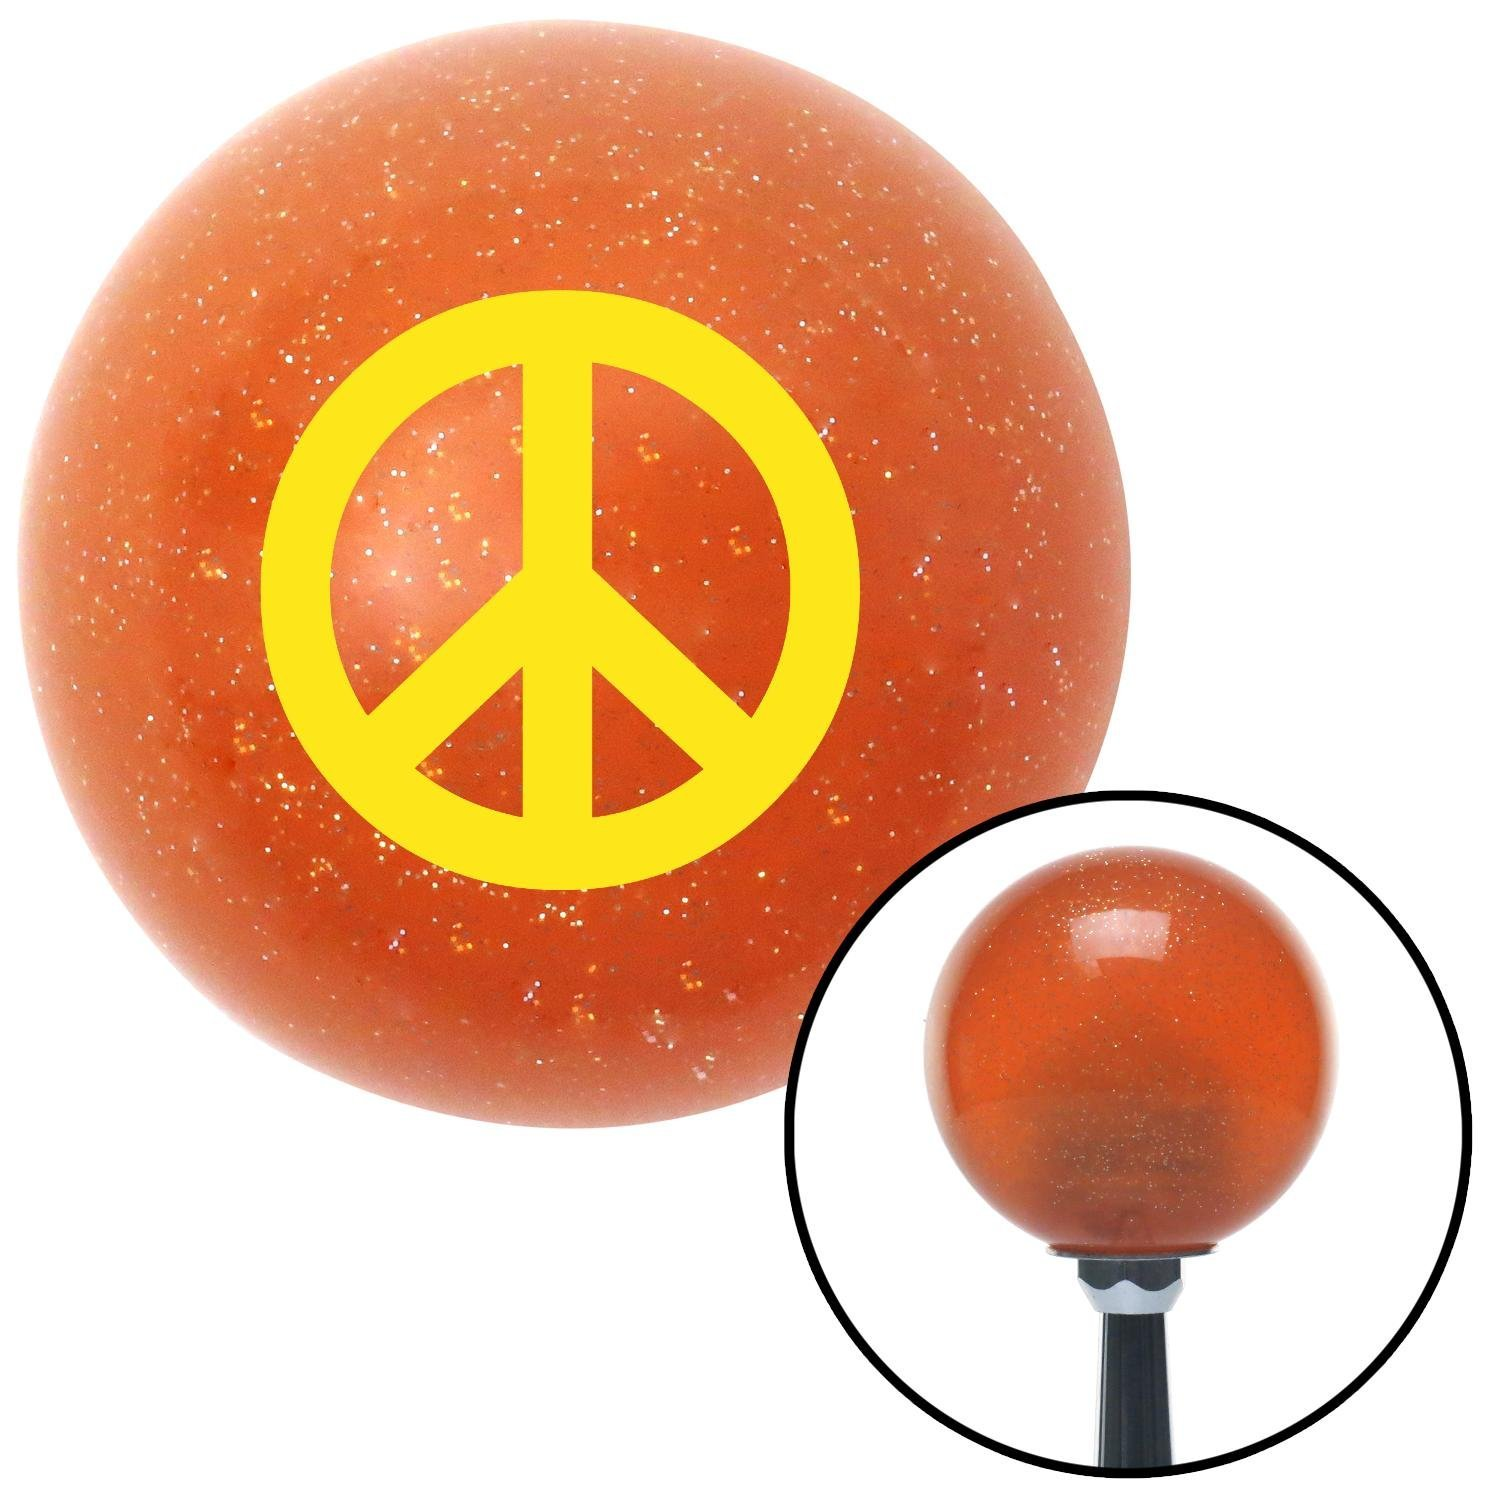 American Shifter 42800 Orange Metal Flake Shift Knob with 16mm x 1.5 Insert Yellow Peace Sign